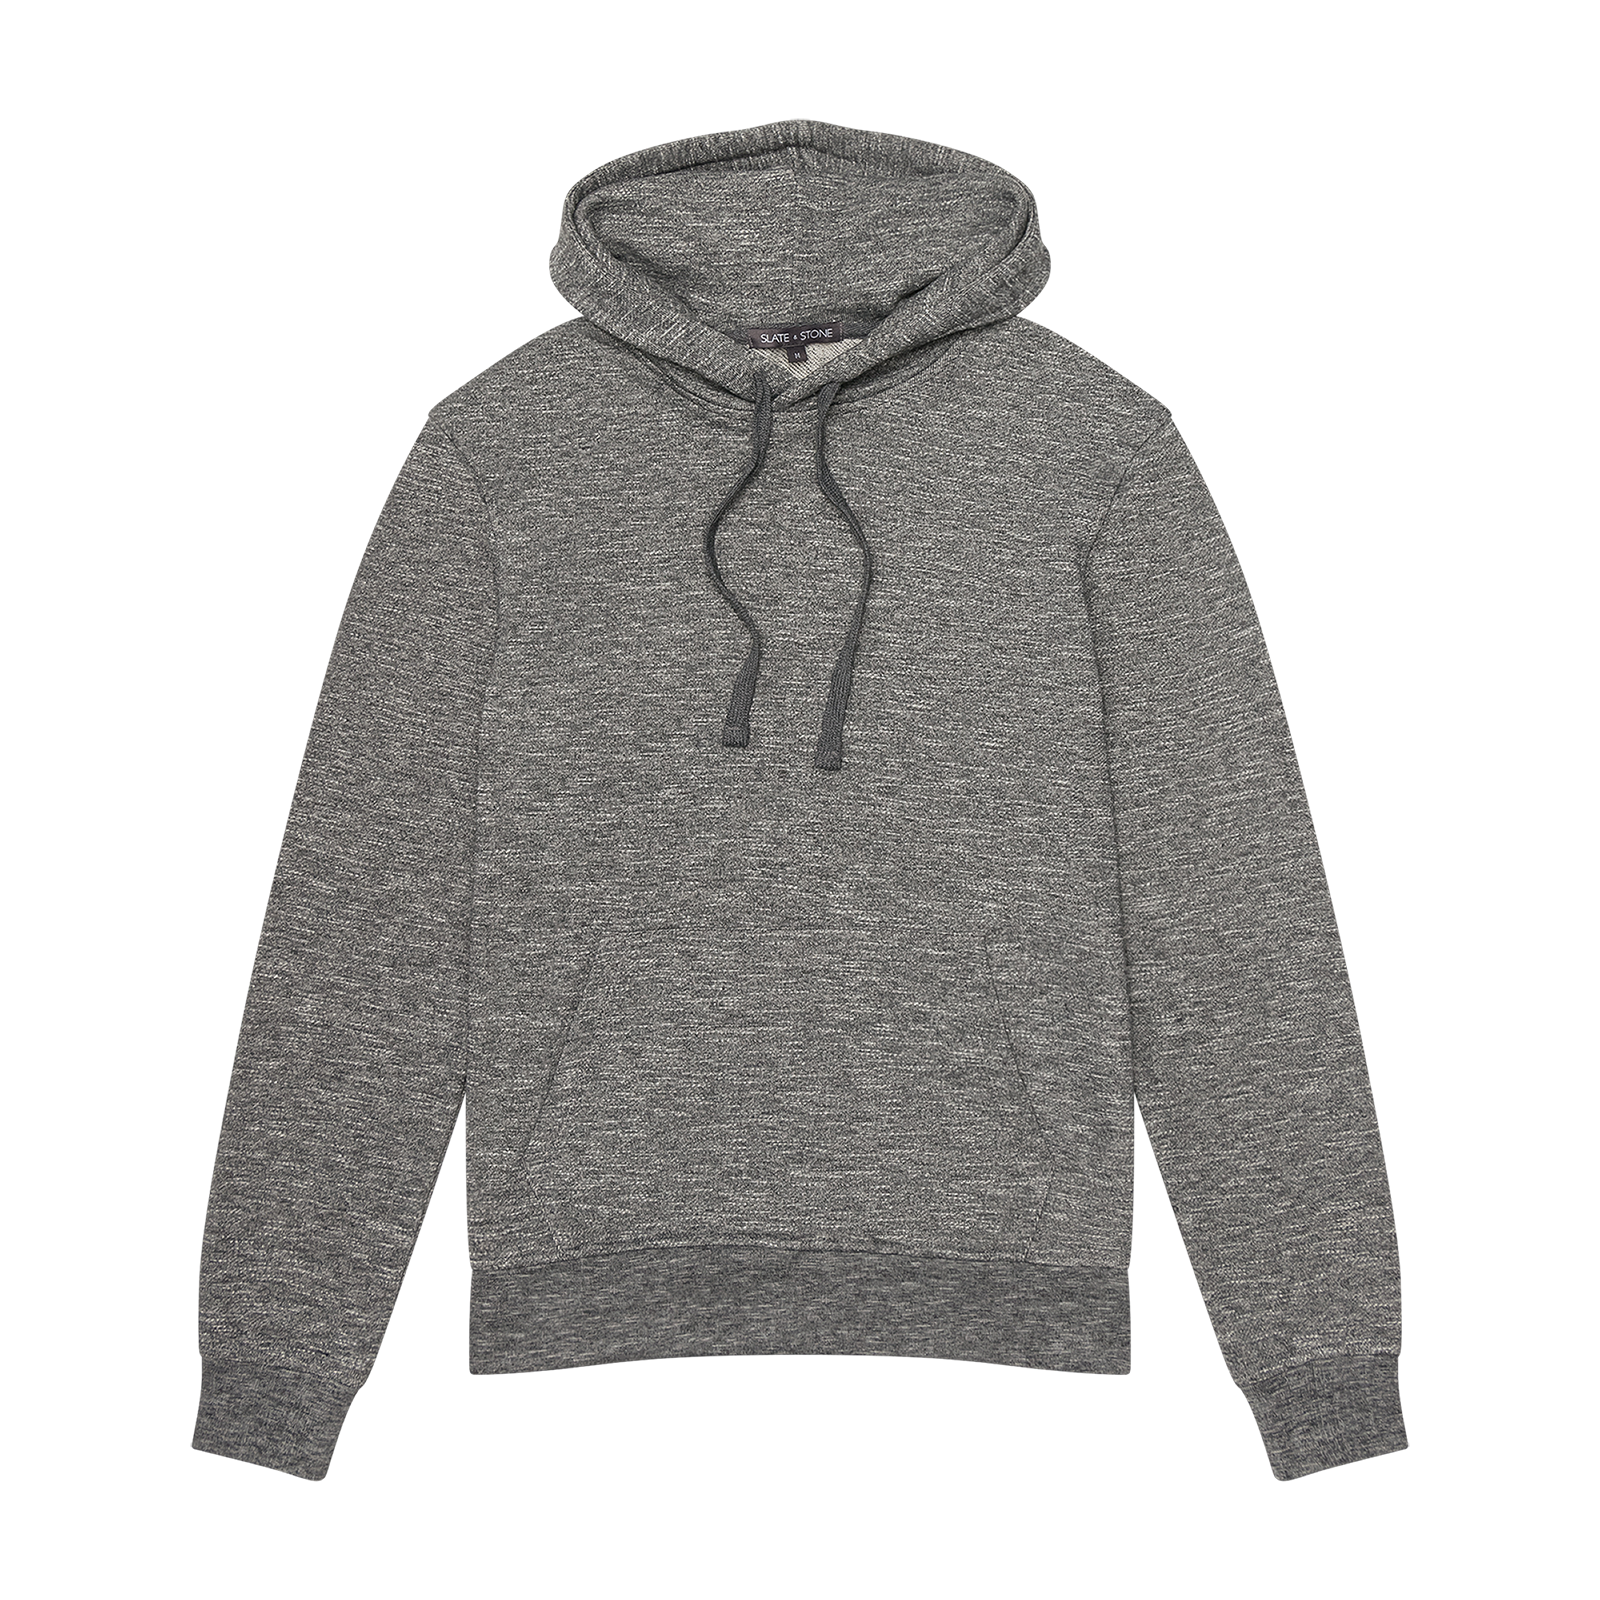 Flat lay hoodie product photography